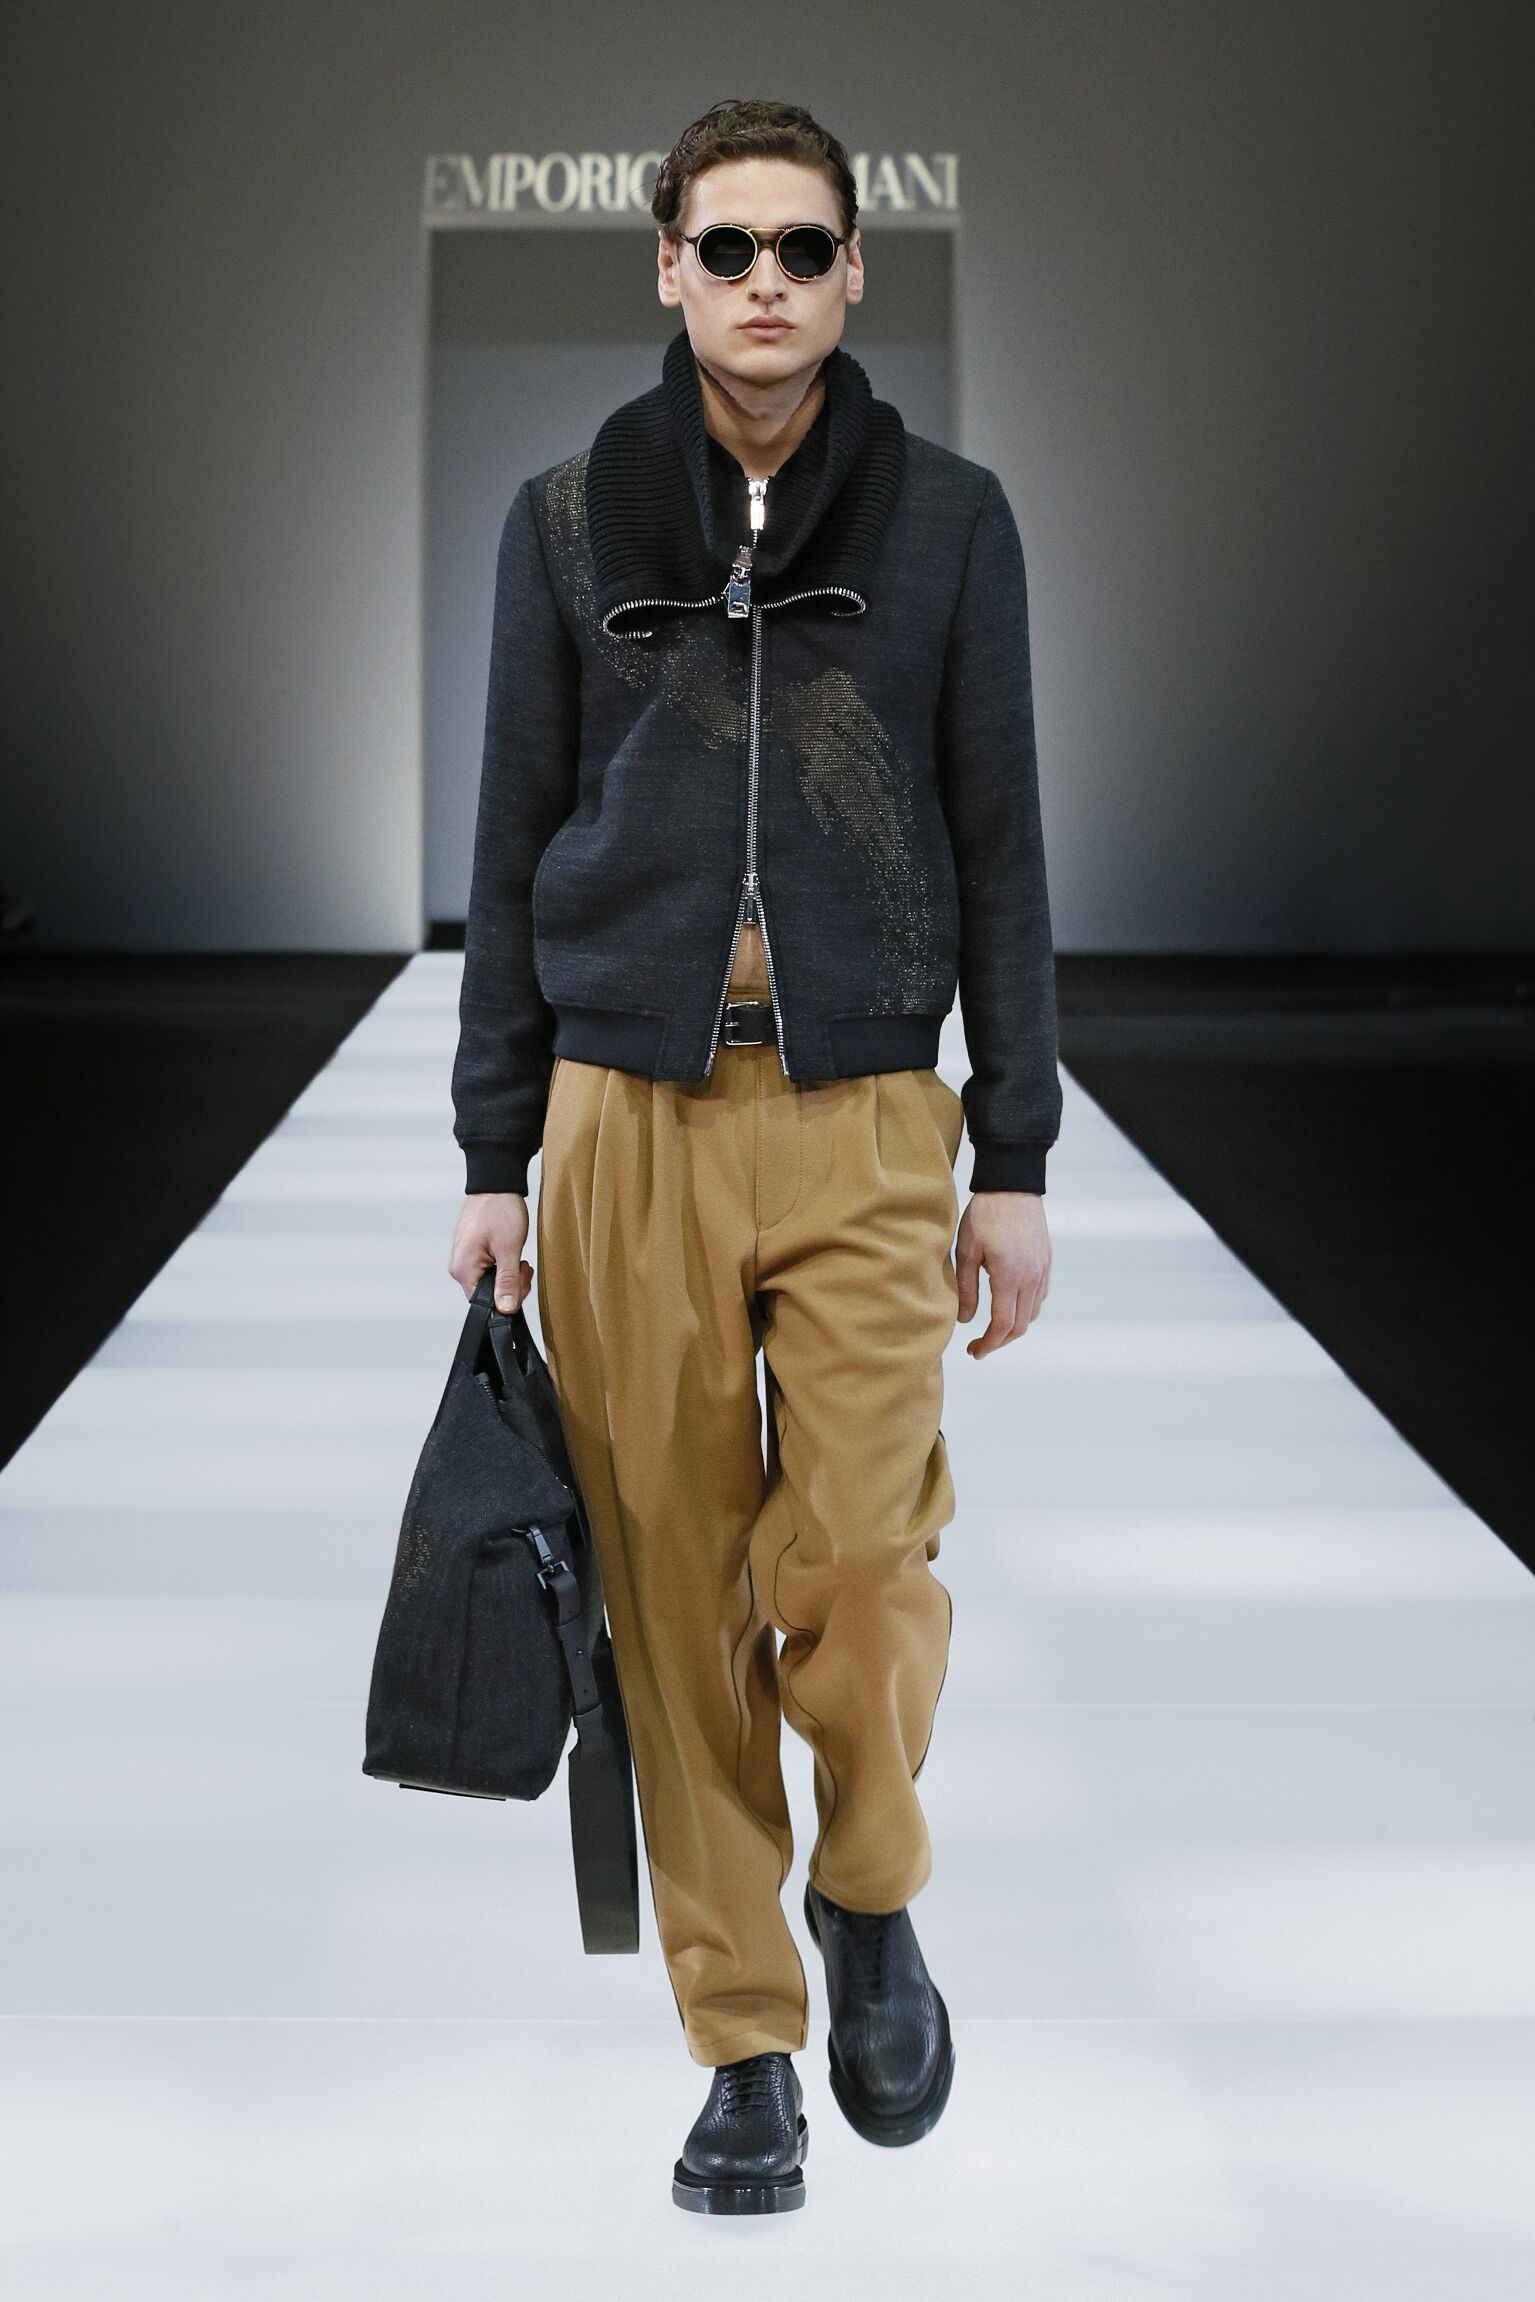 Runway Emporio Armani Fall Winter 2015 16 Men's Collection Milan Fashion Week